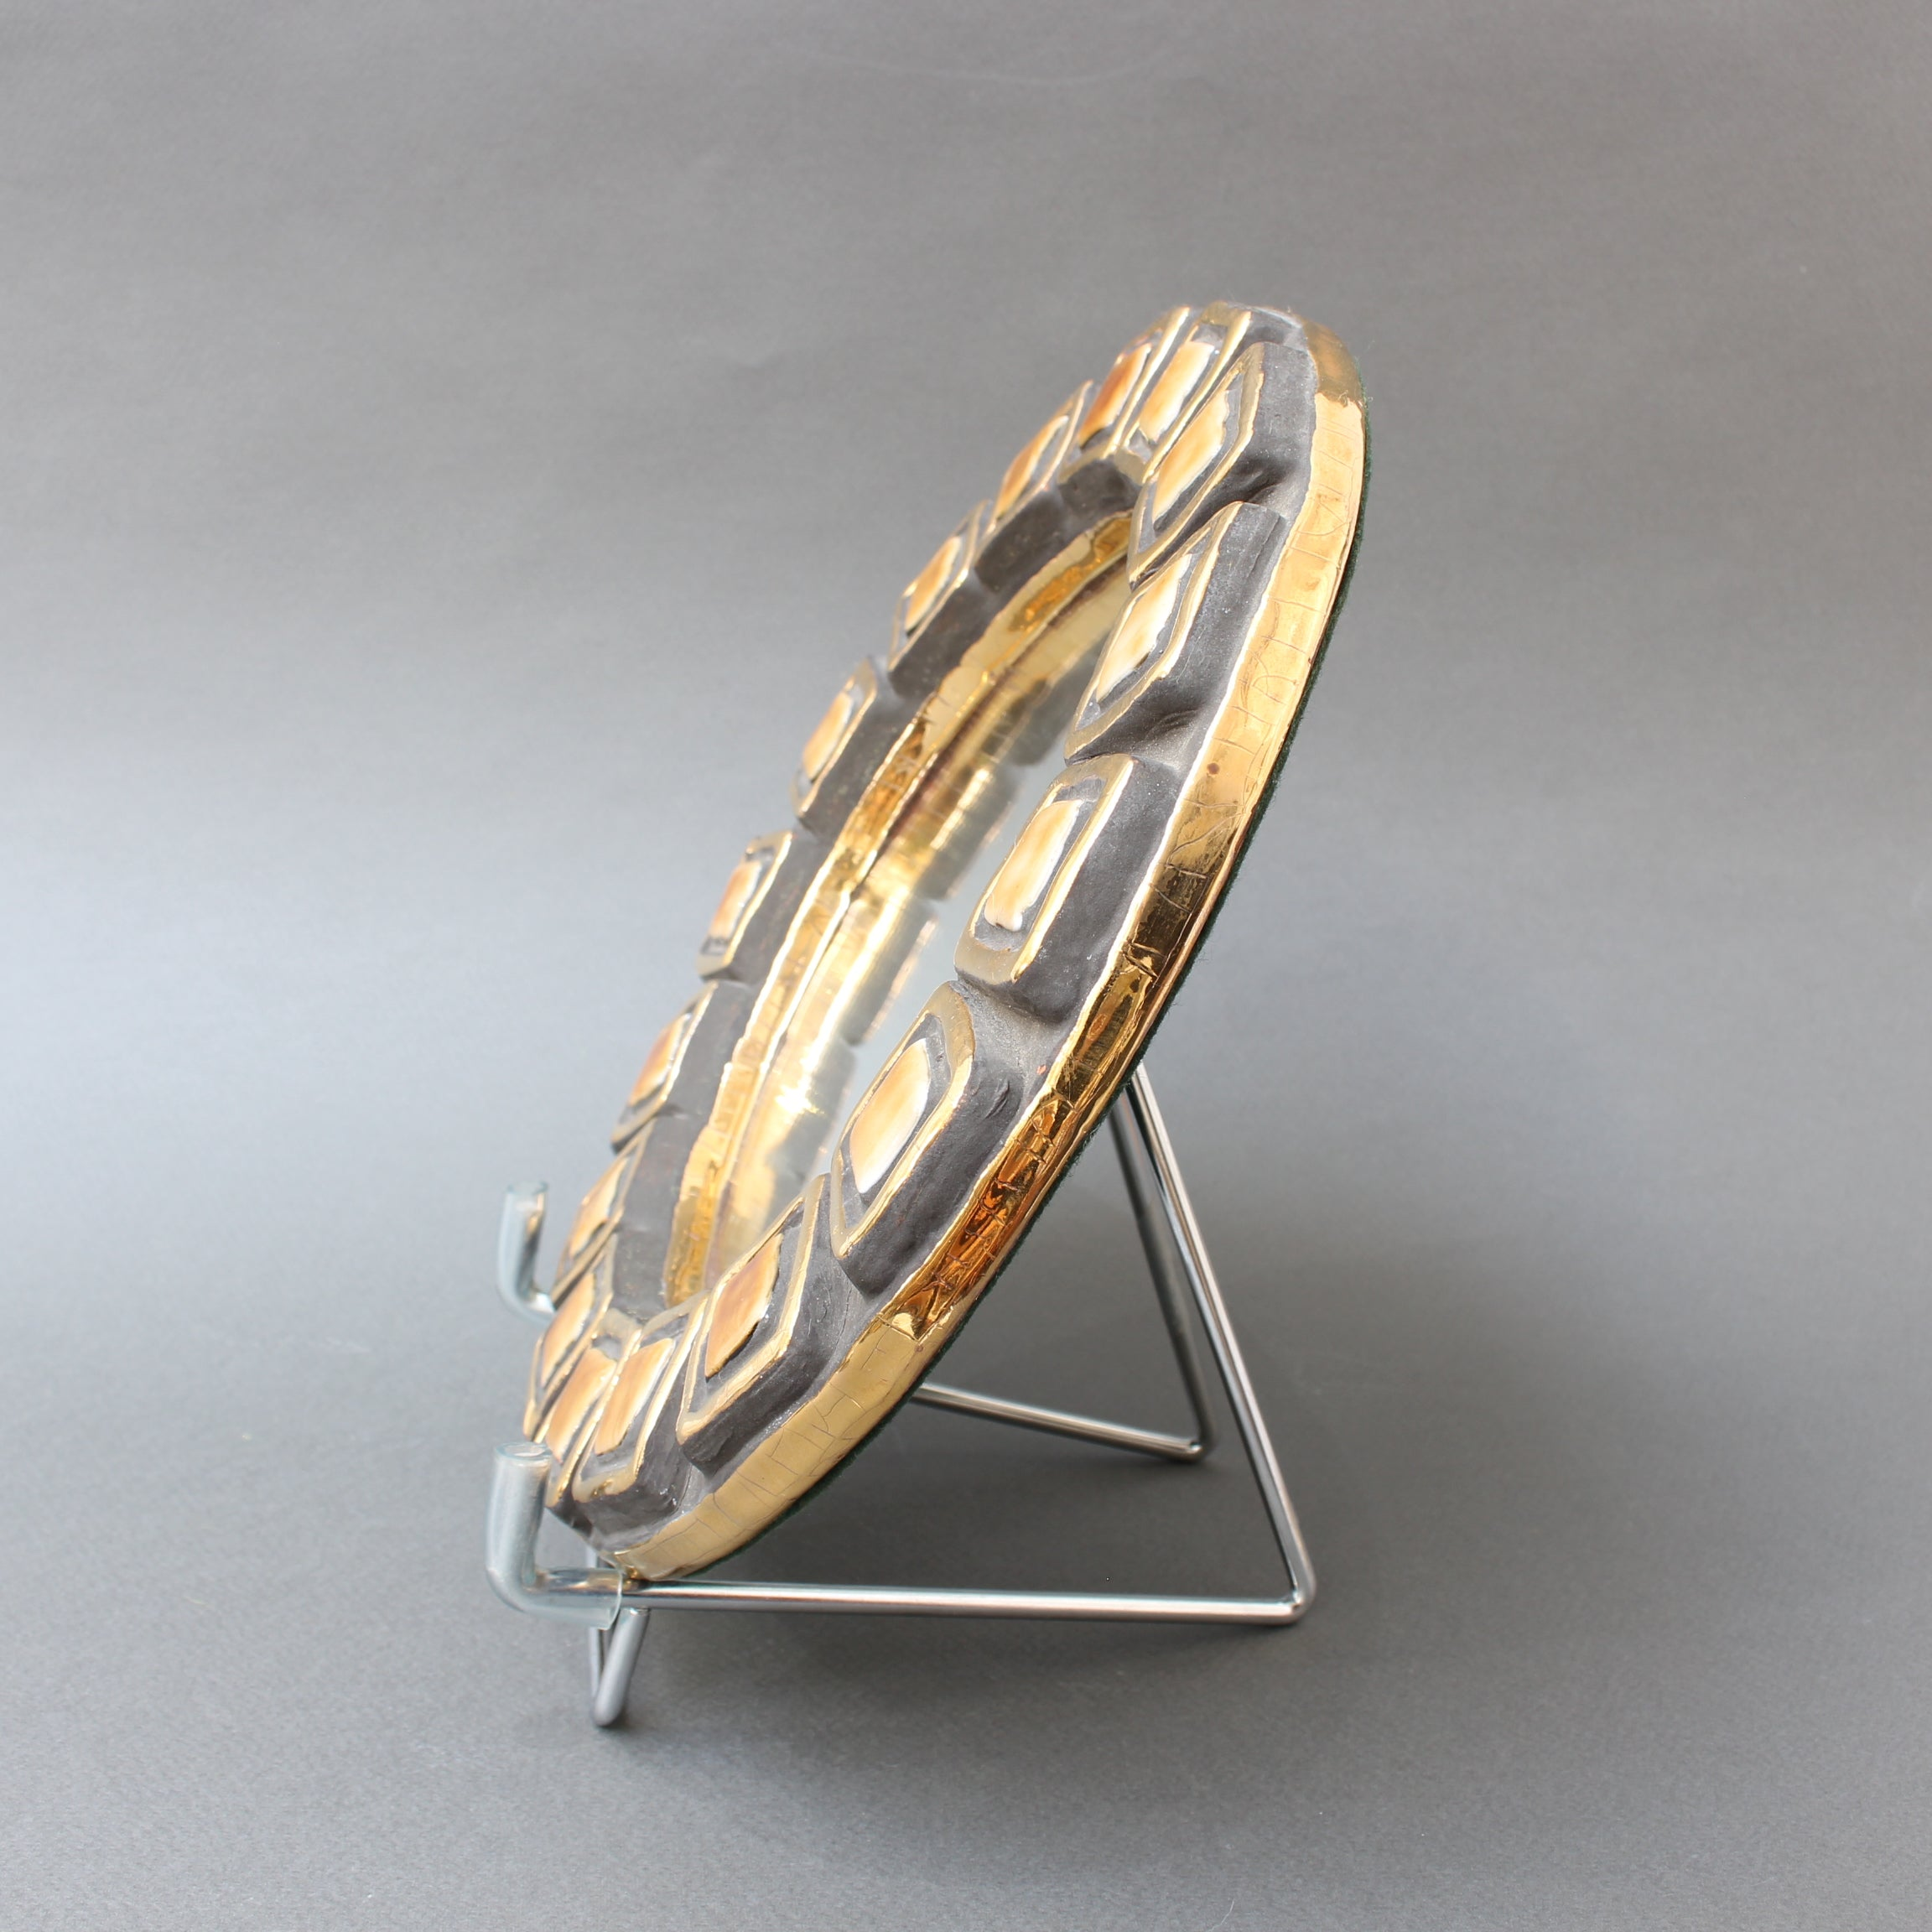 "Ceramic Wall Mirror by Mithé Espelt - ""Couronnes"" (1952)"